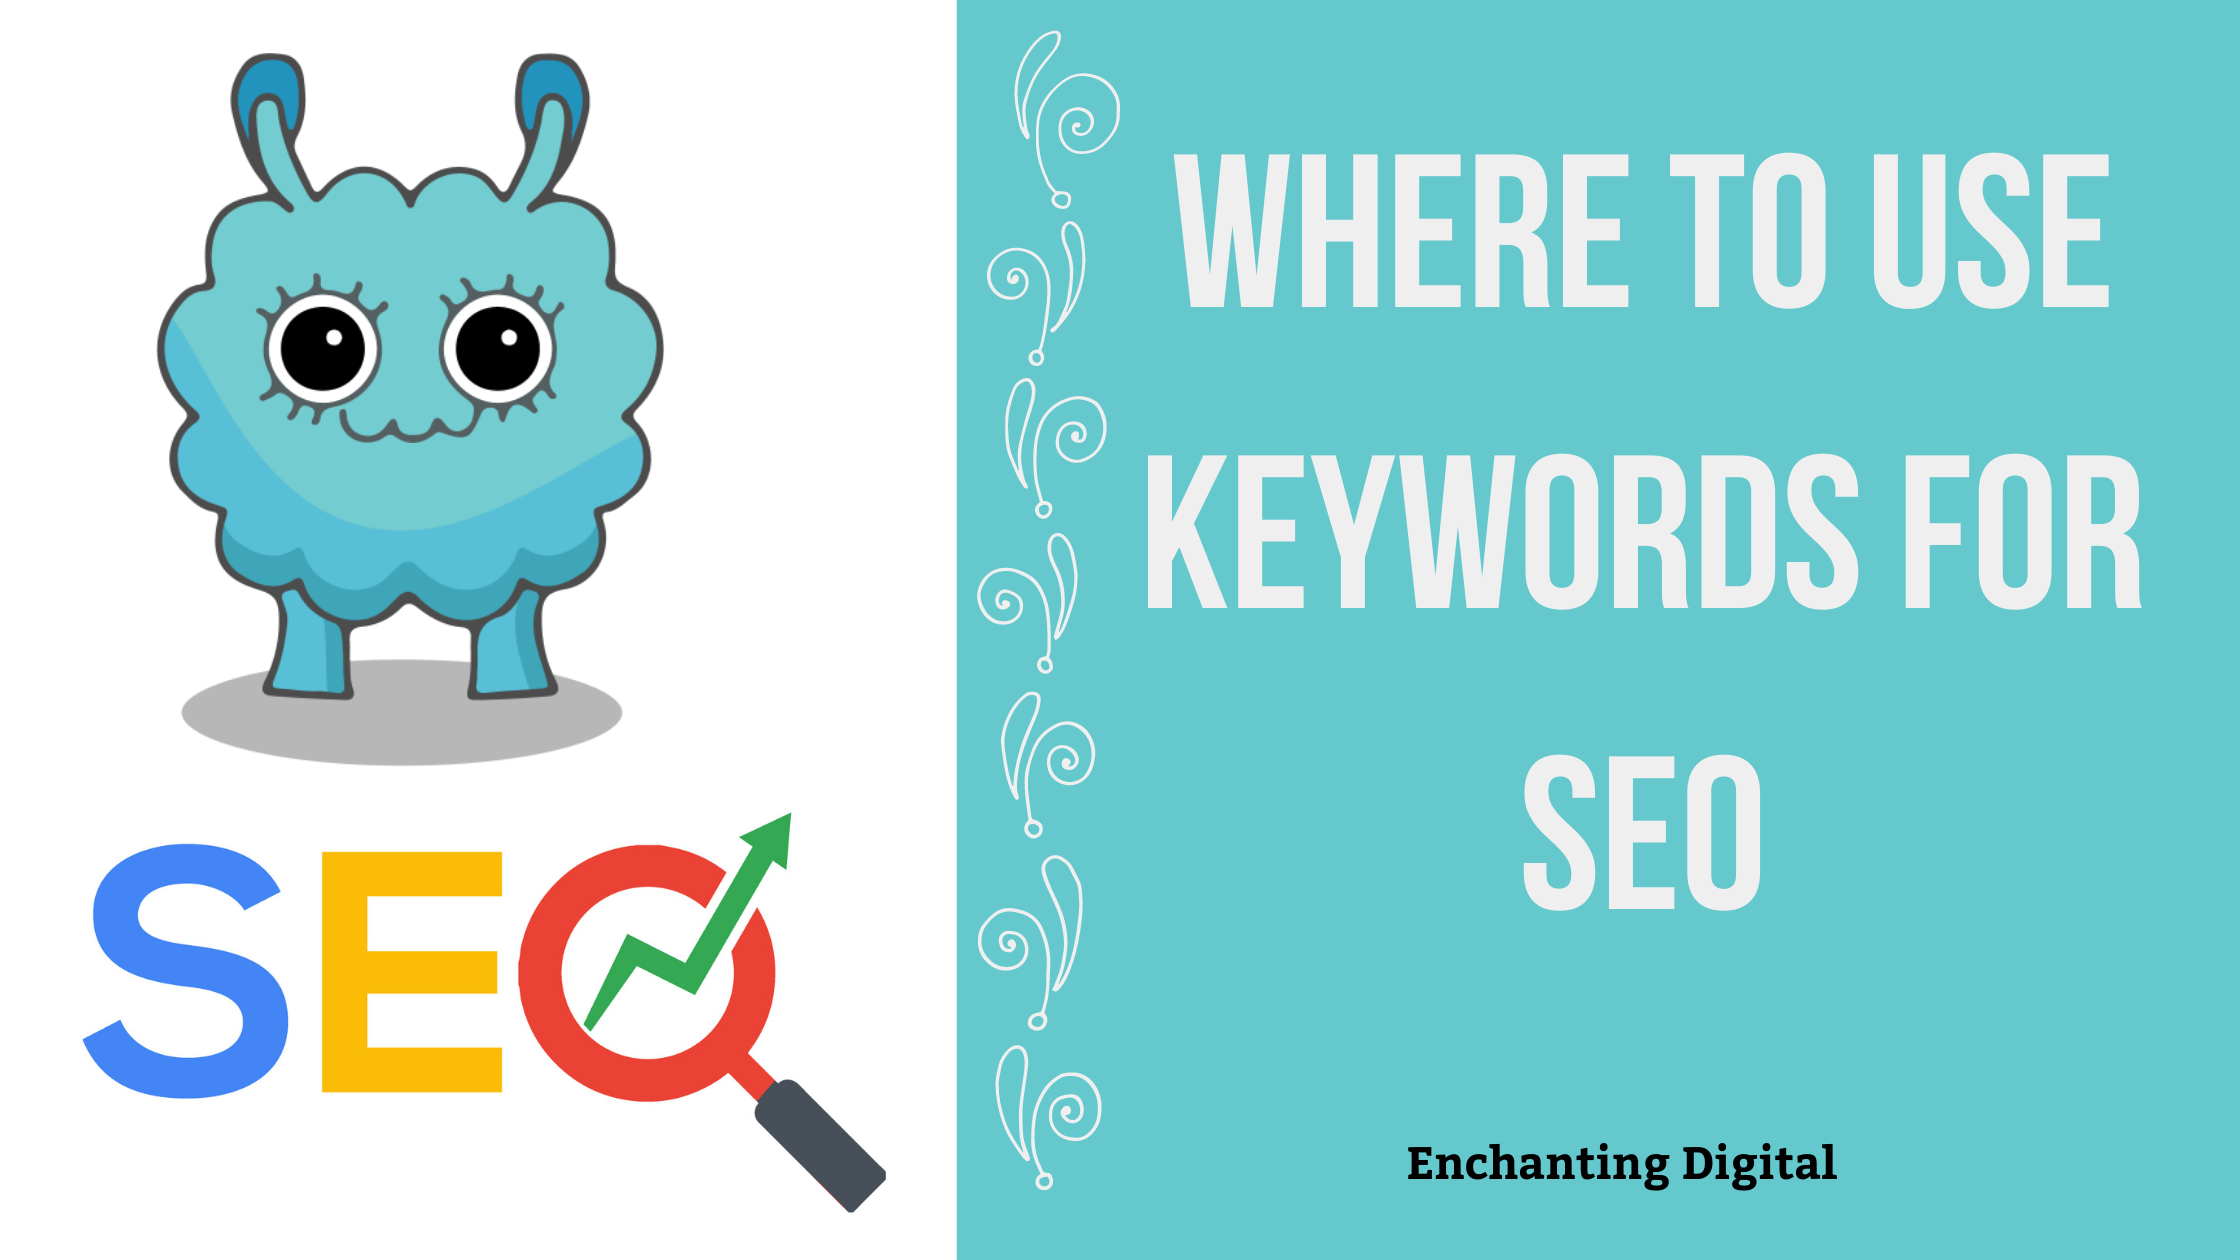 Where to Use Keywords for SEO